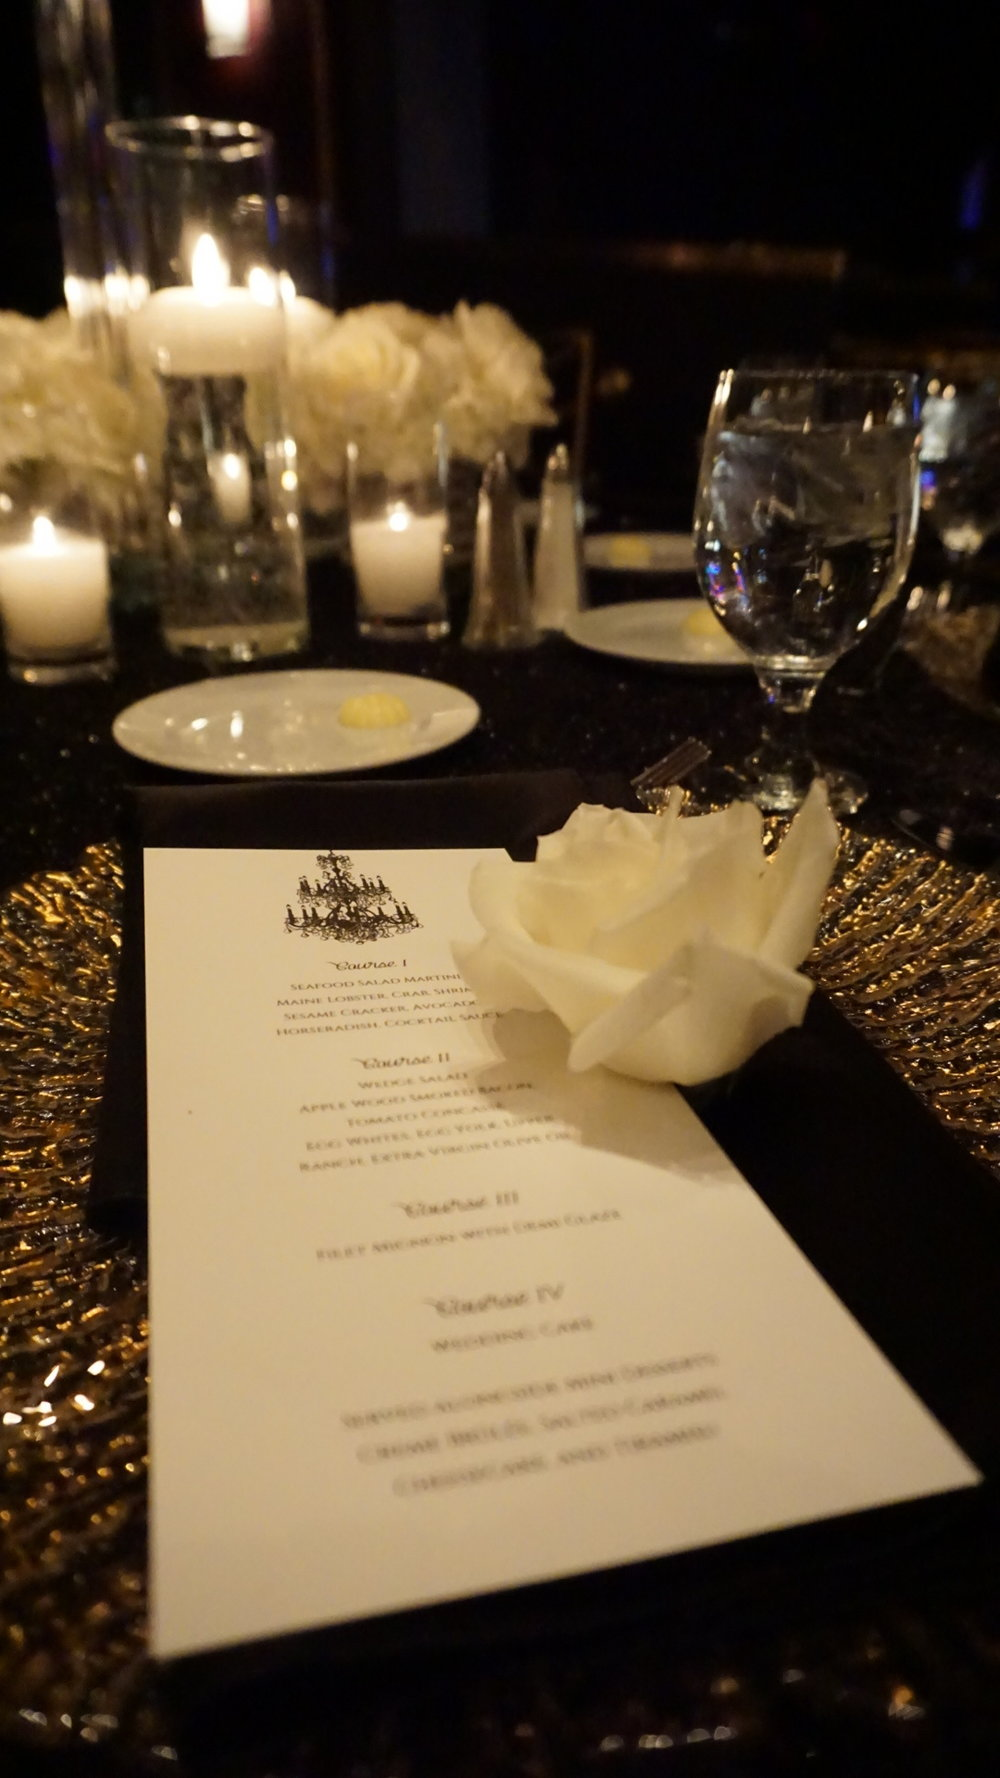 Long White Menu on Black Napkin